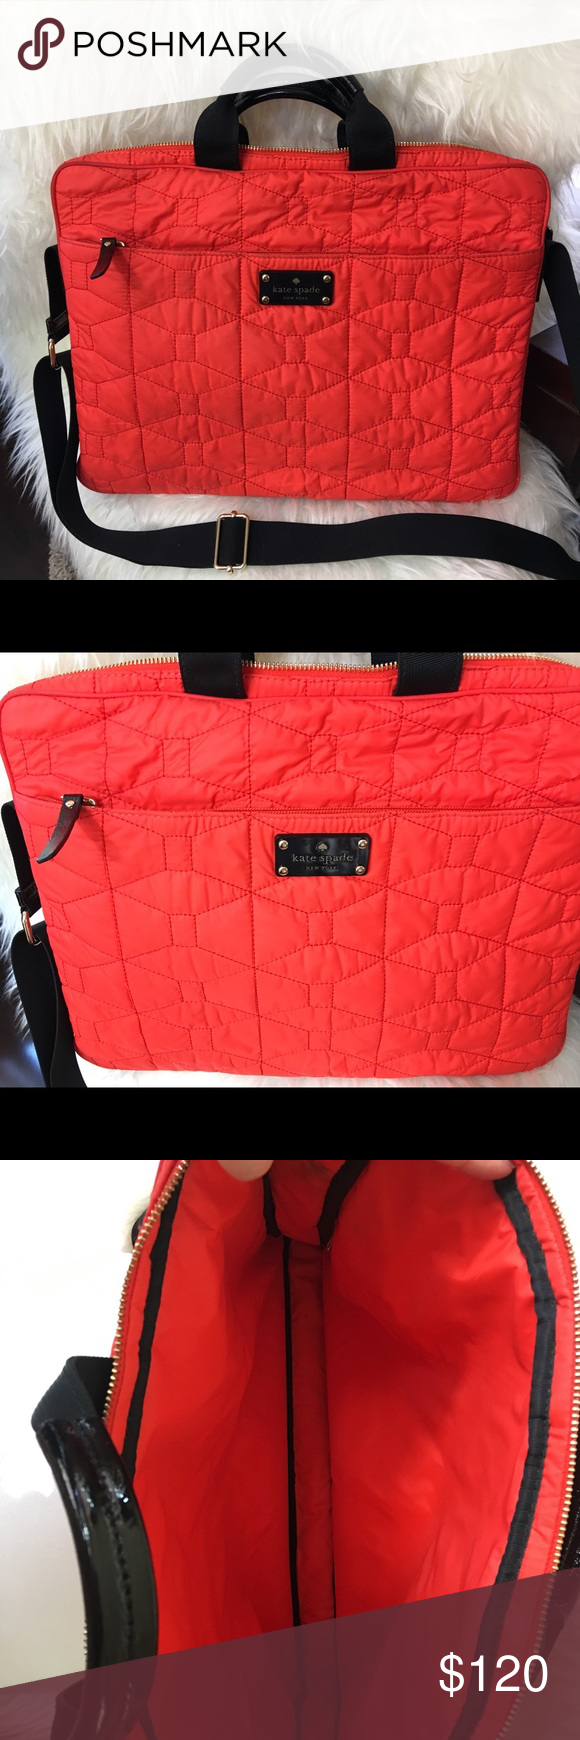 Make an offerAuthentic Kate Spade bag Messenger bags and